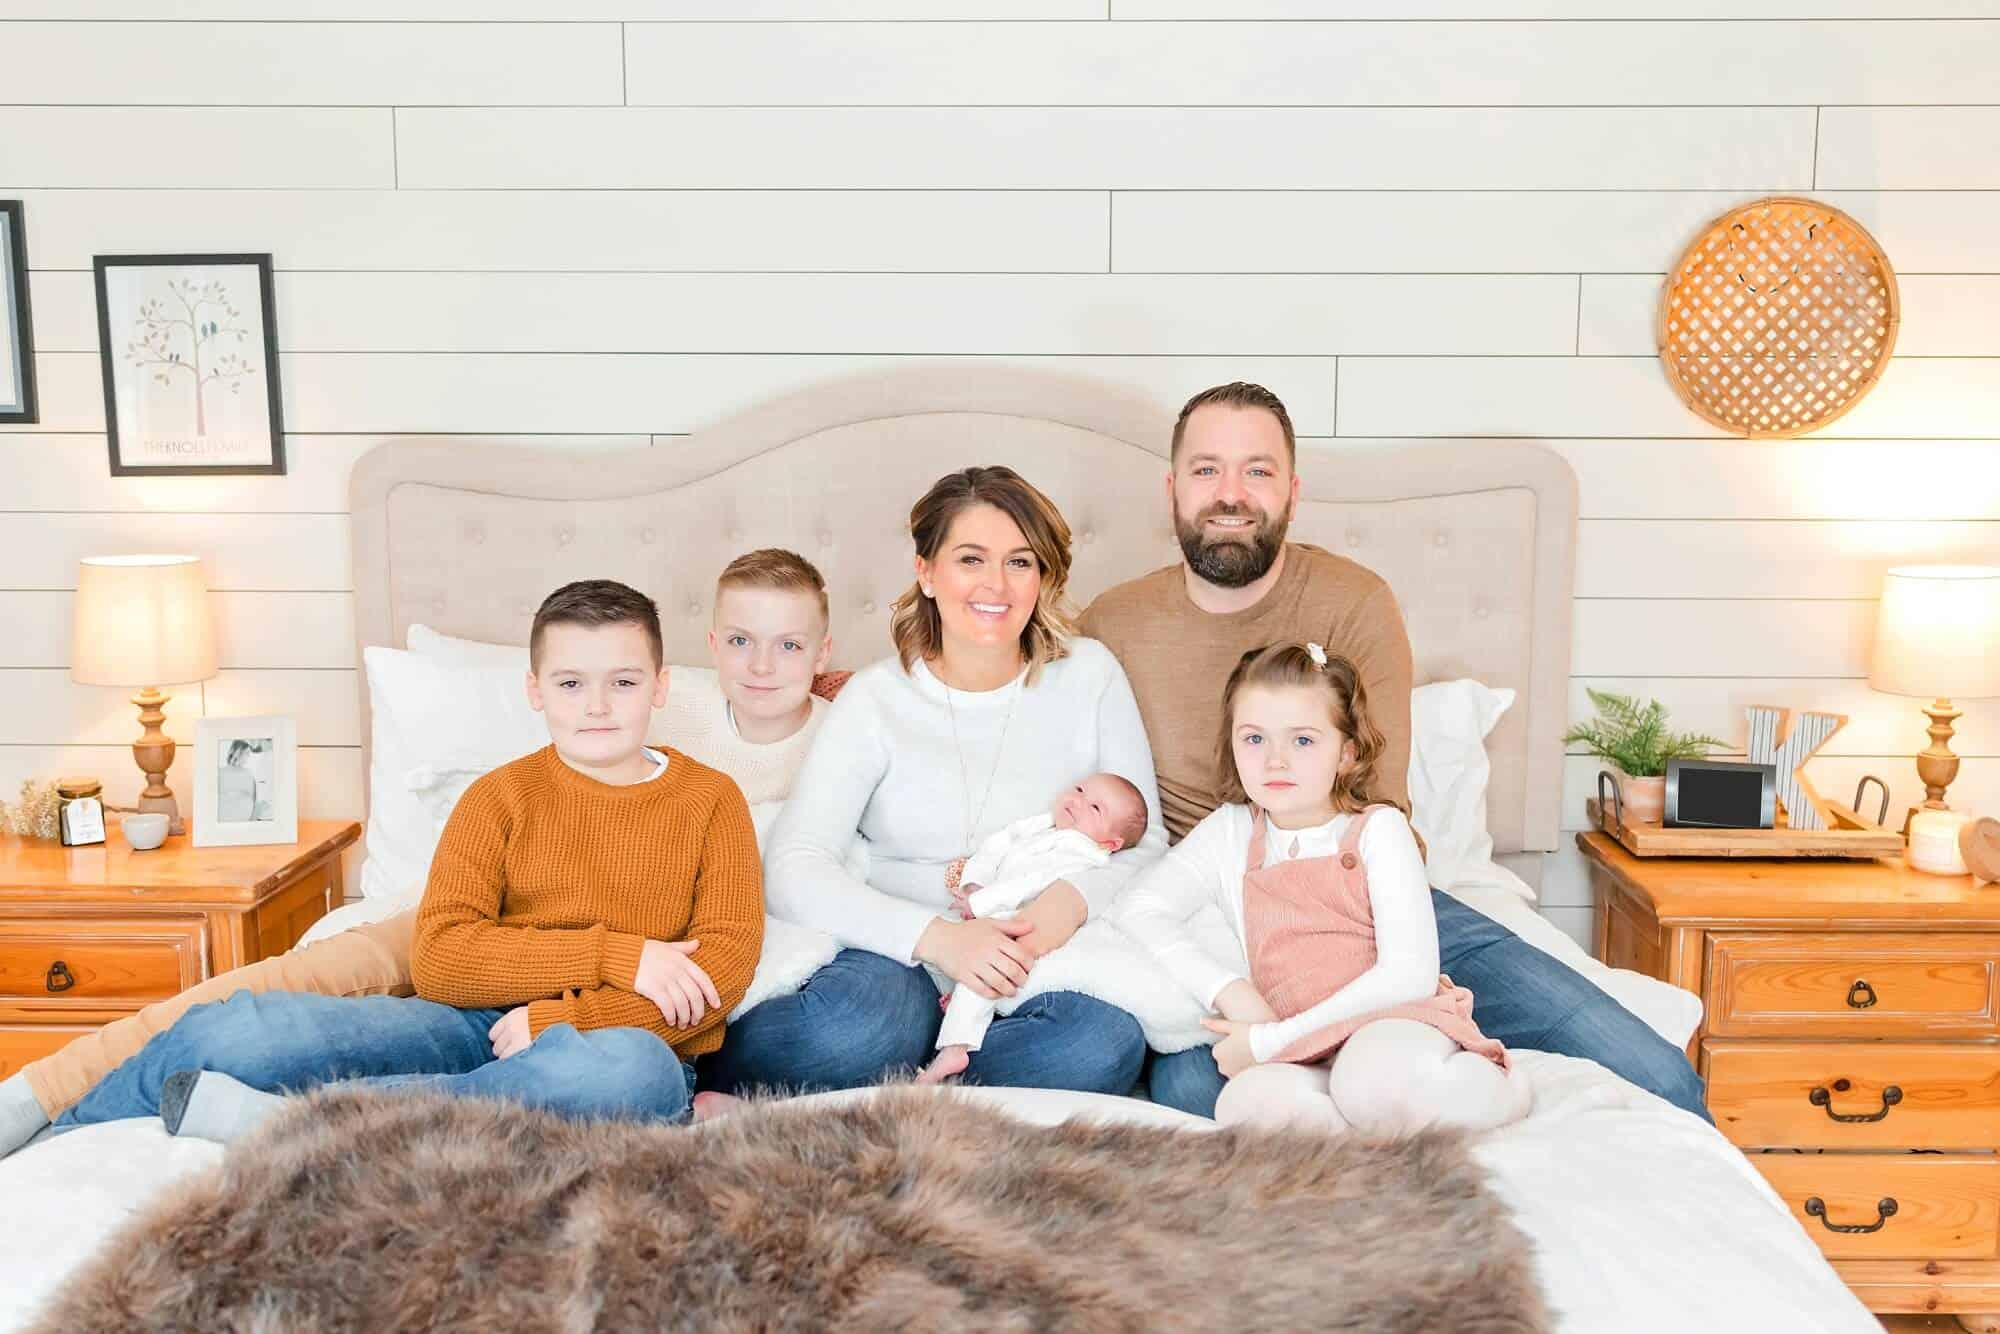 in-home newborn session full family on bed portrait tiffany murray